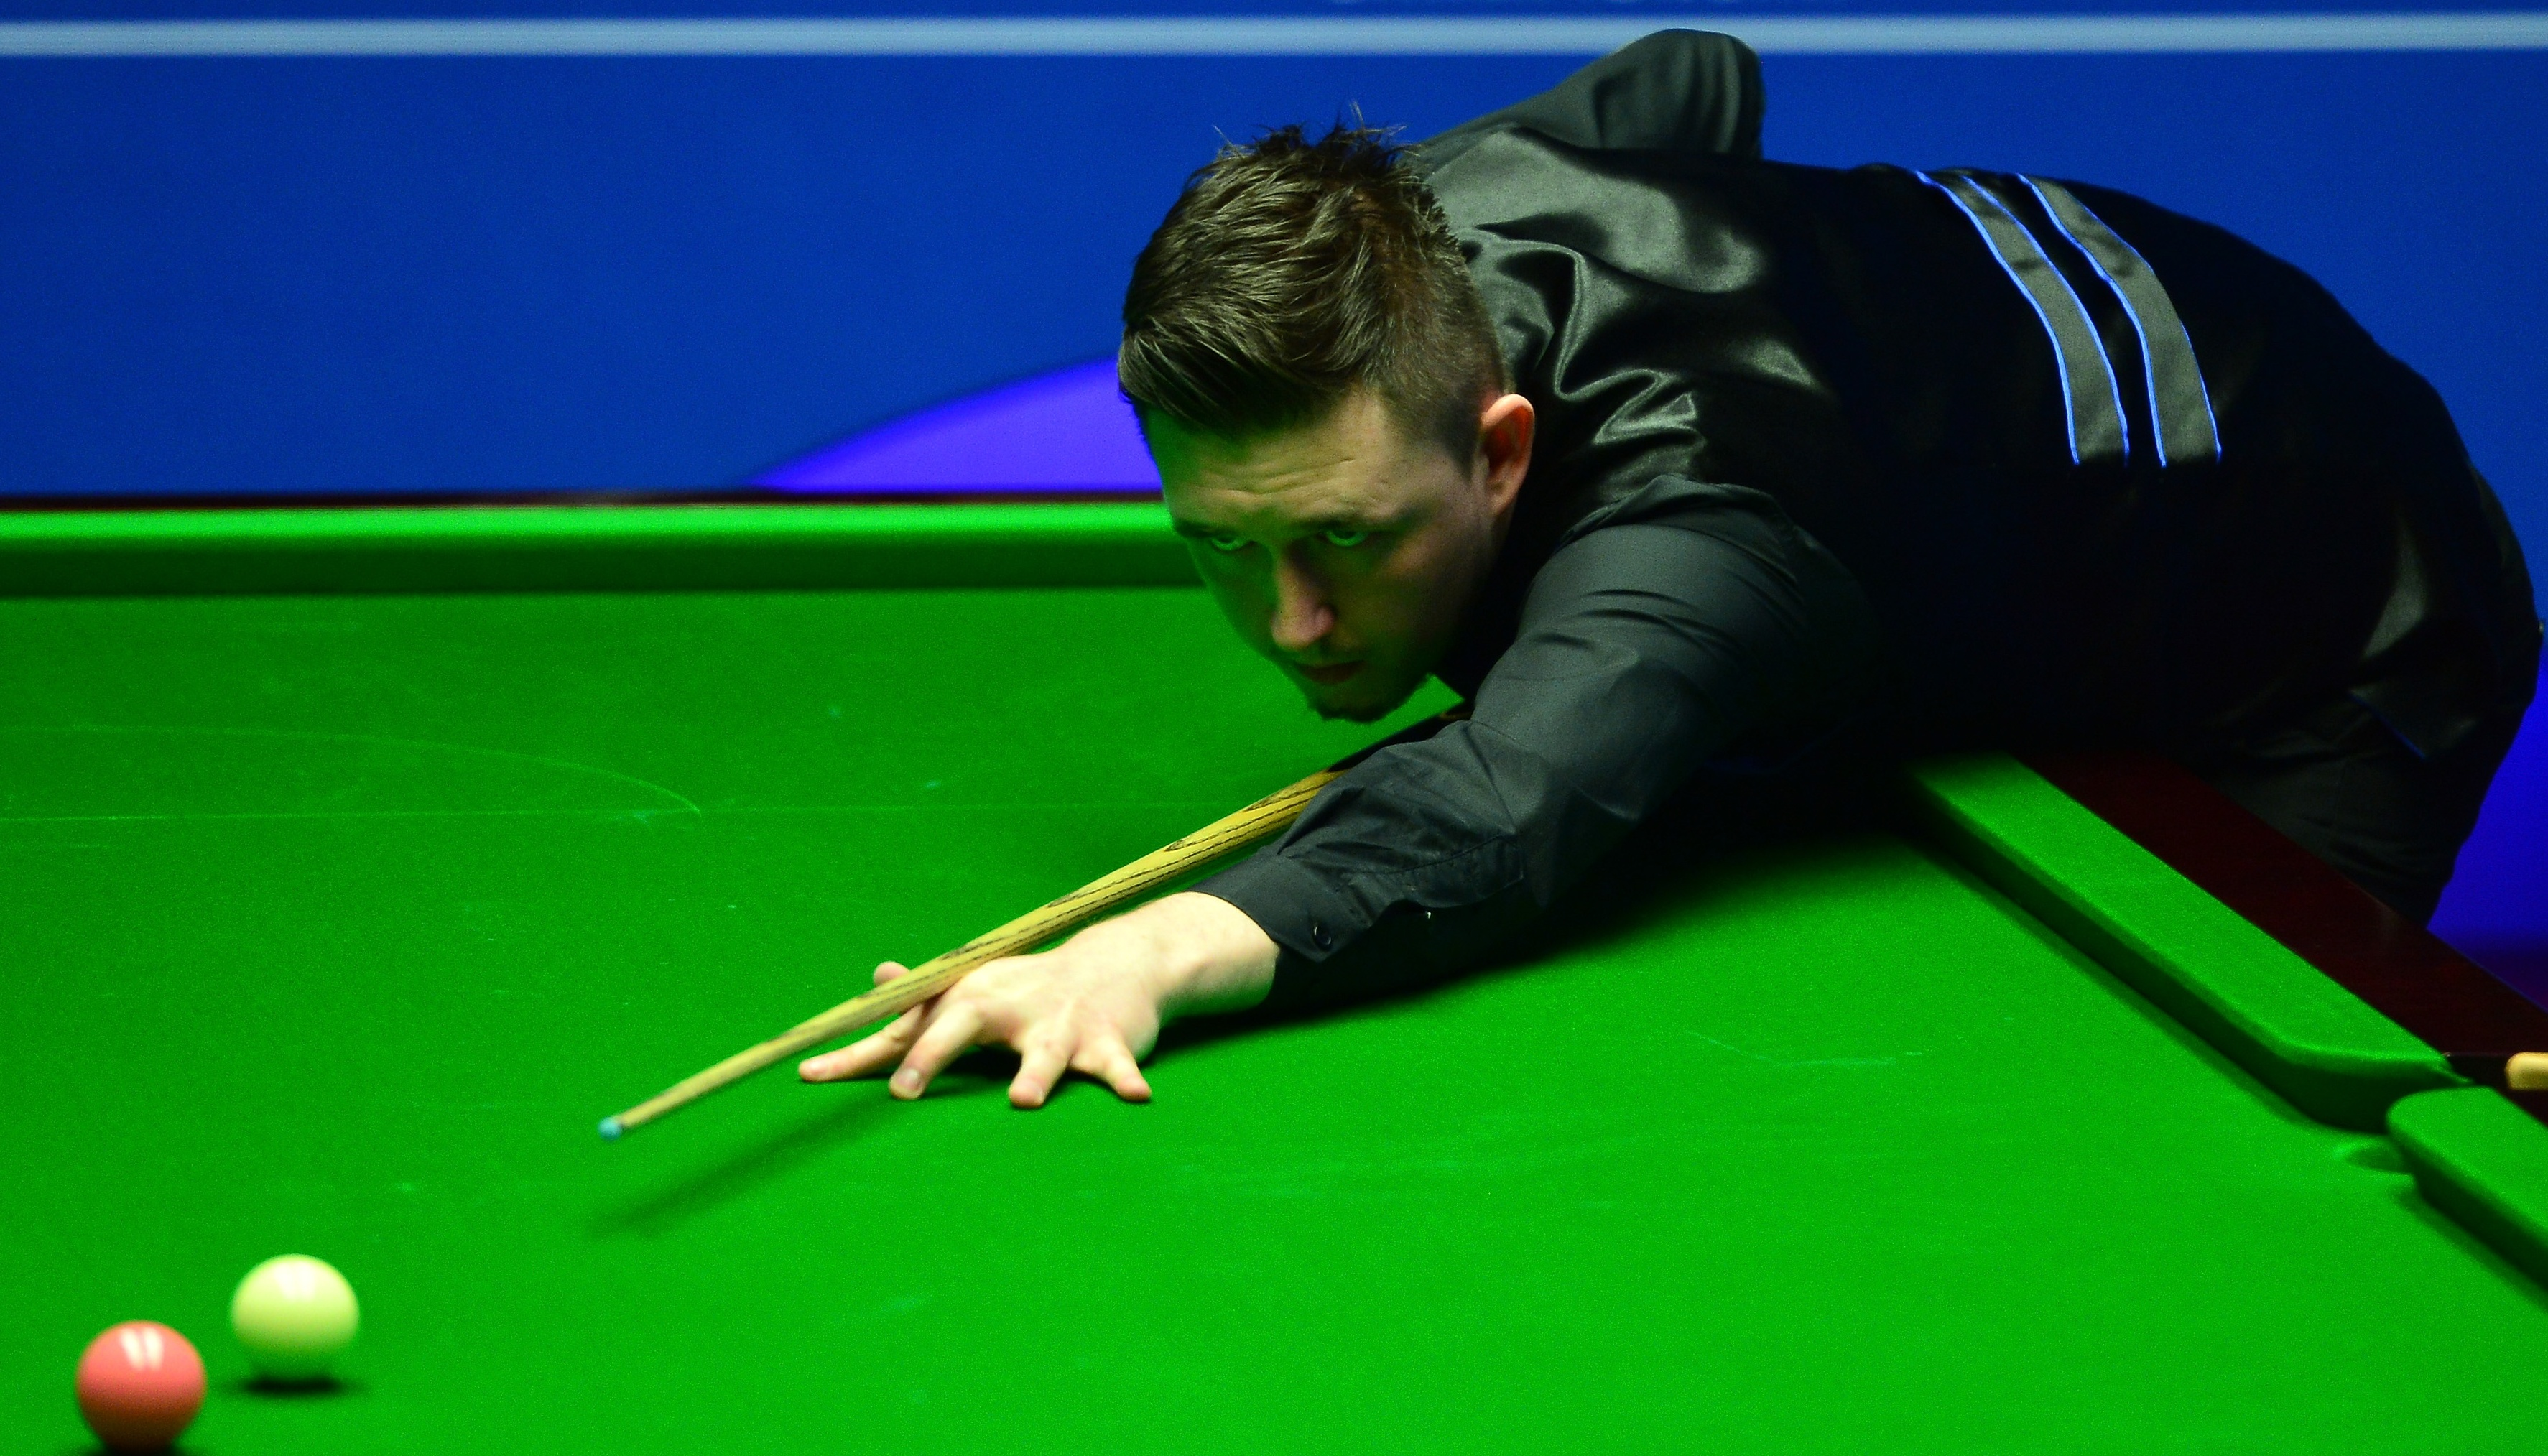 33/1 shot catches the eye in UK Championship snooker betting